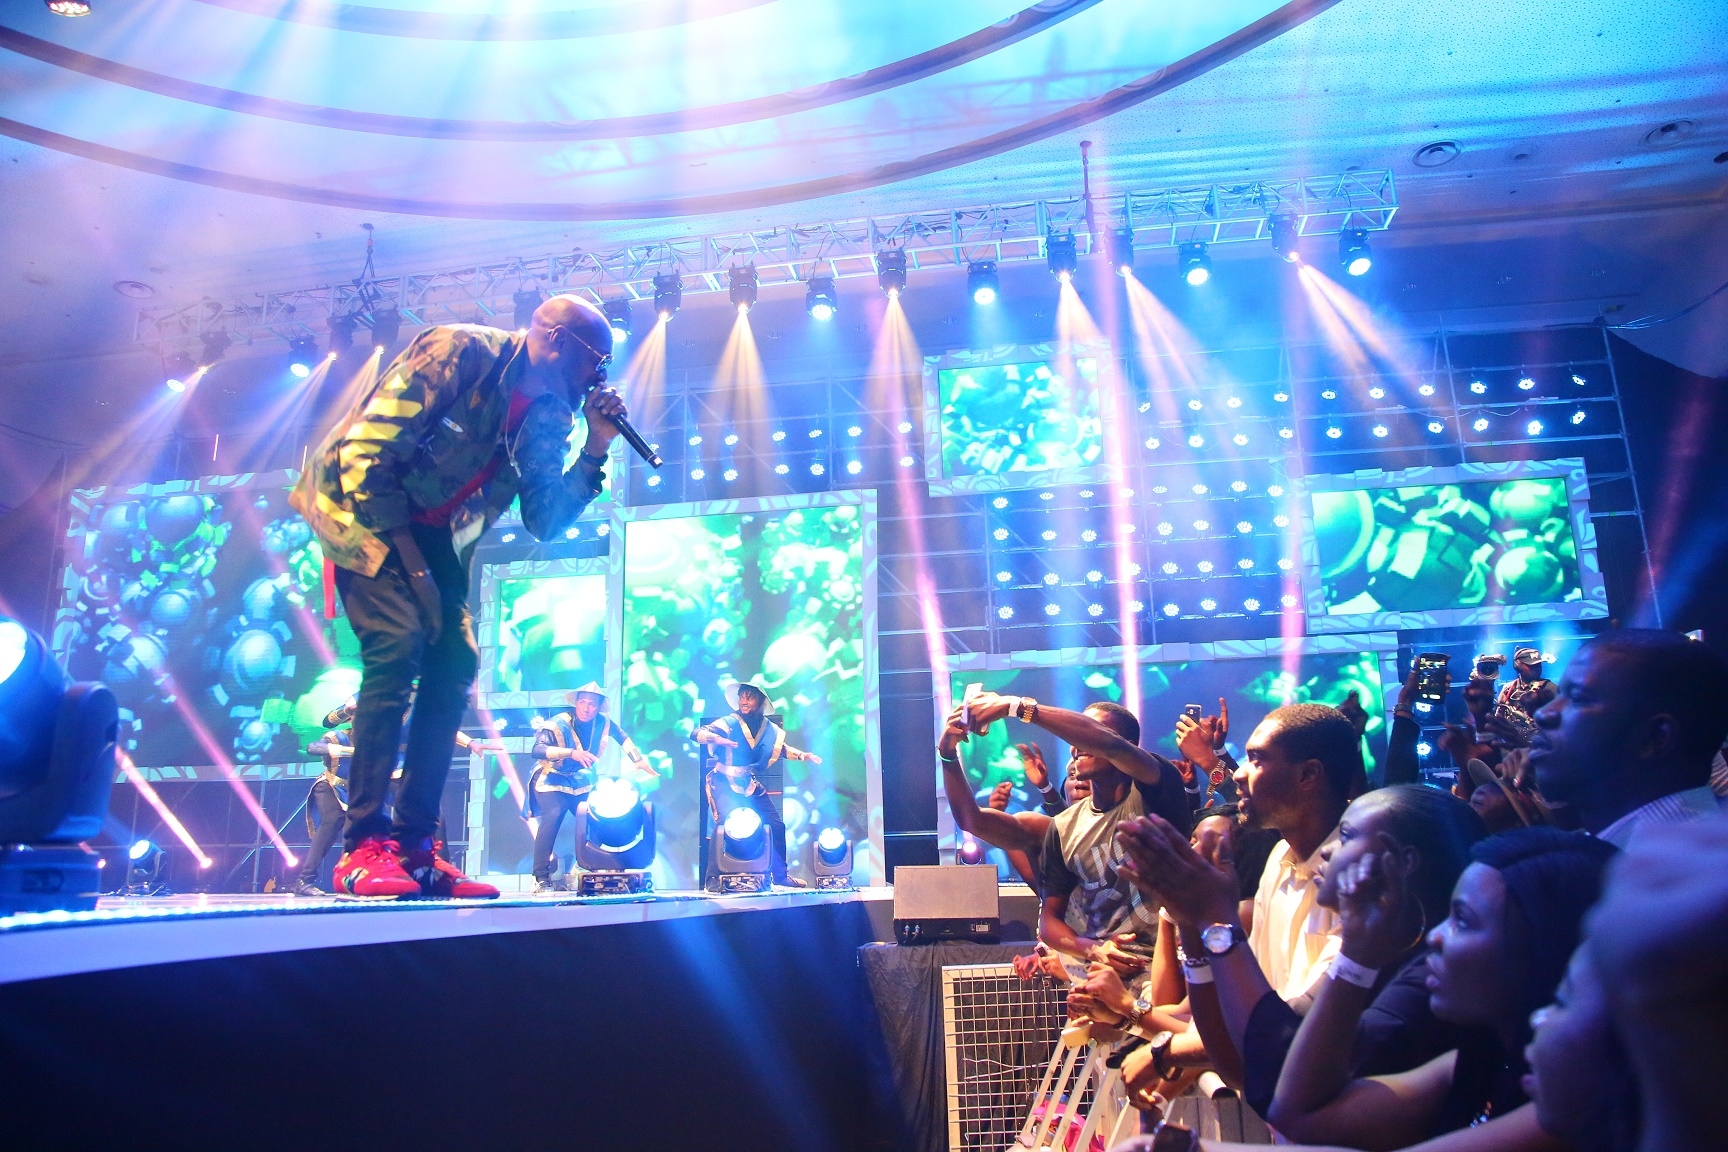 2baba Idibia at the #SoundcityMVP: 'Stop the killings in Benue!'